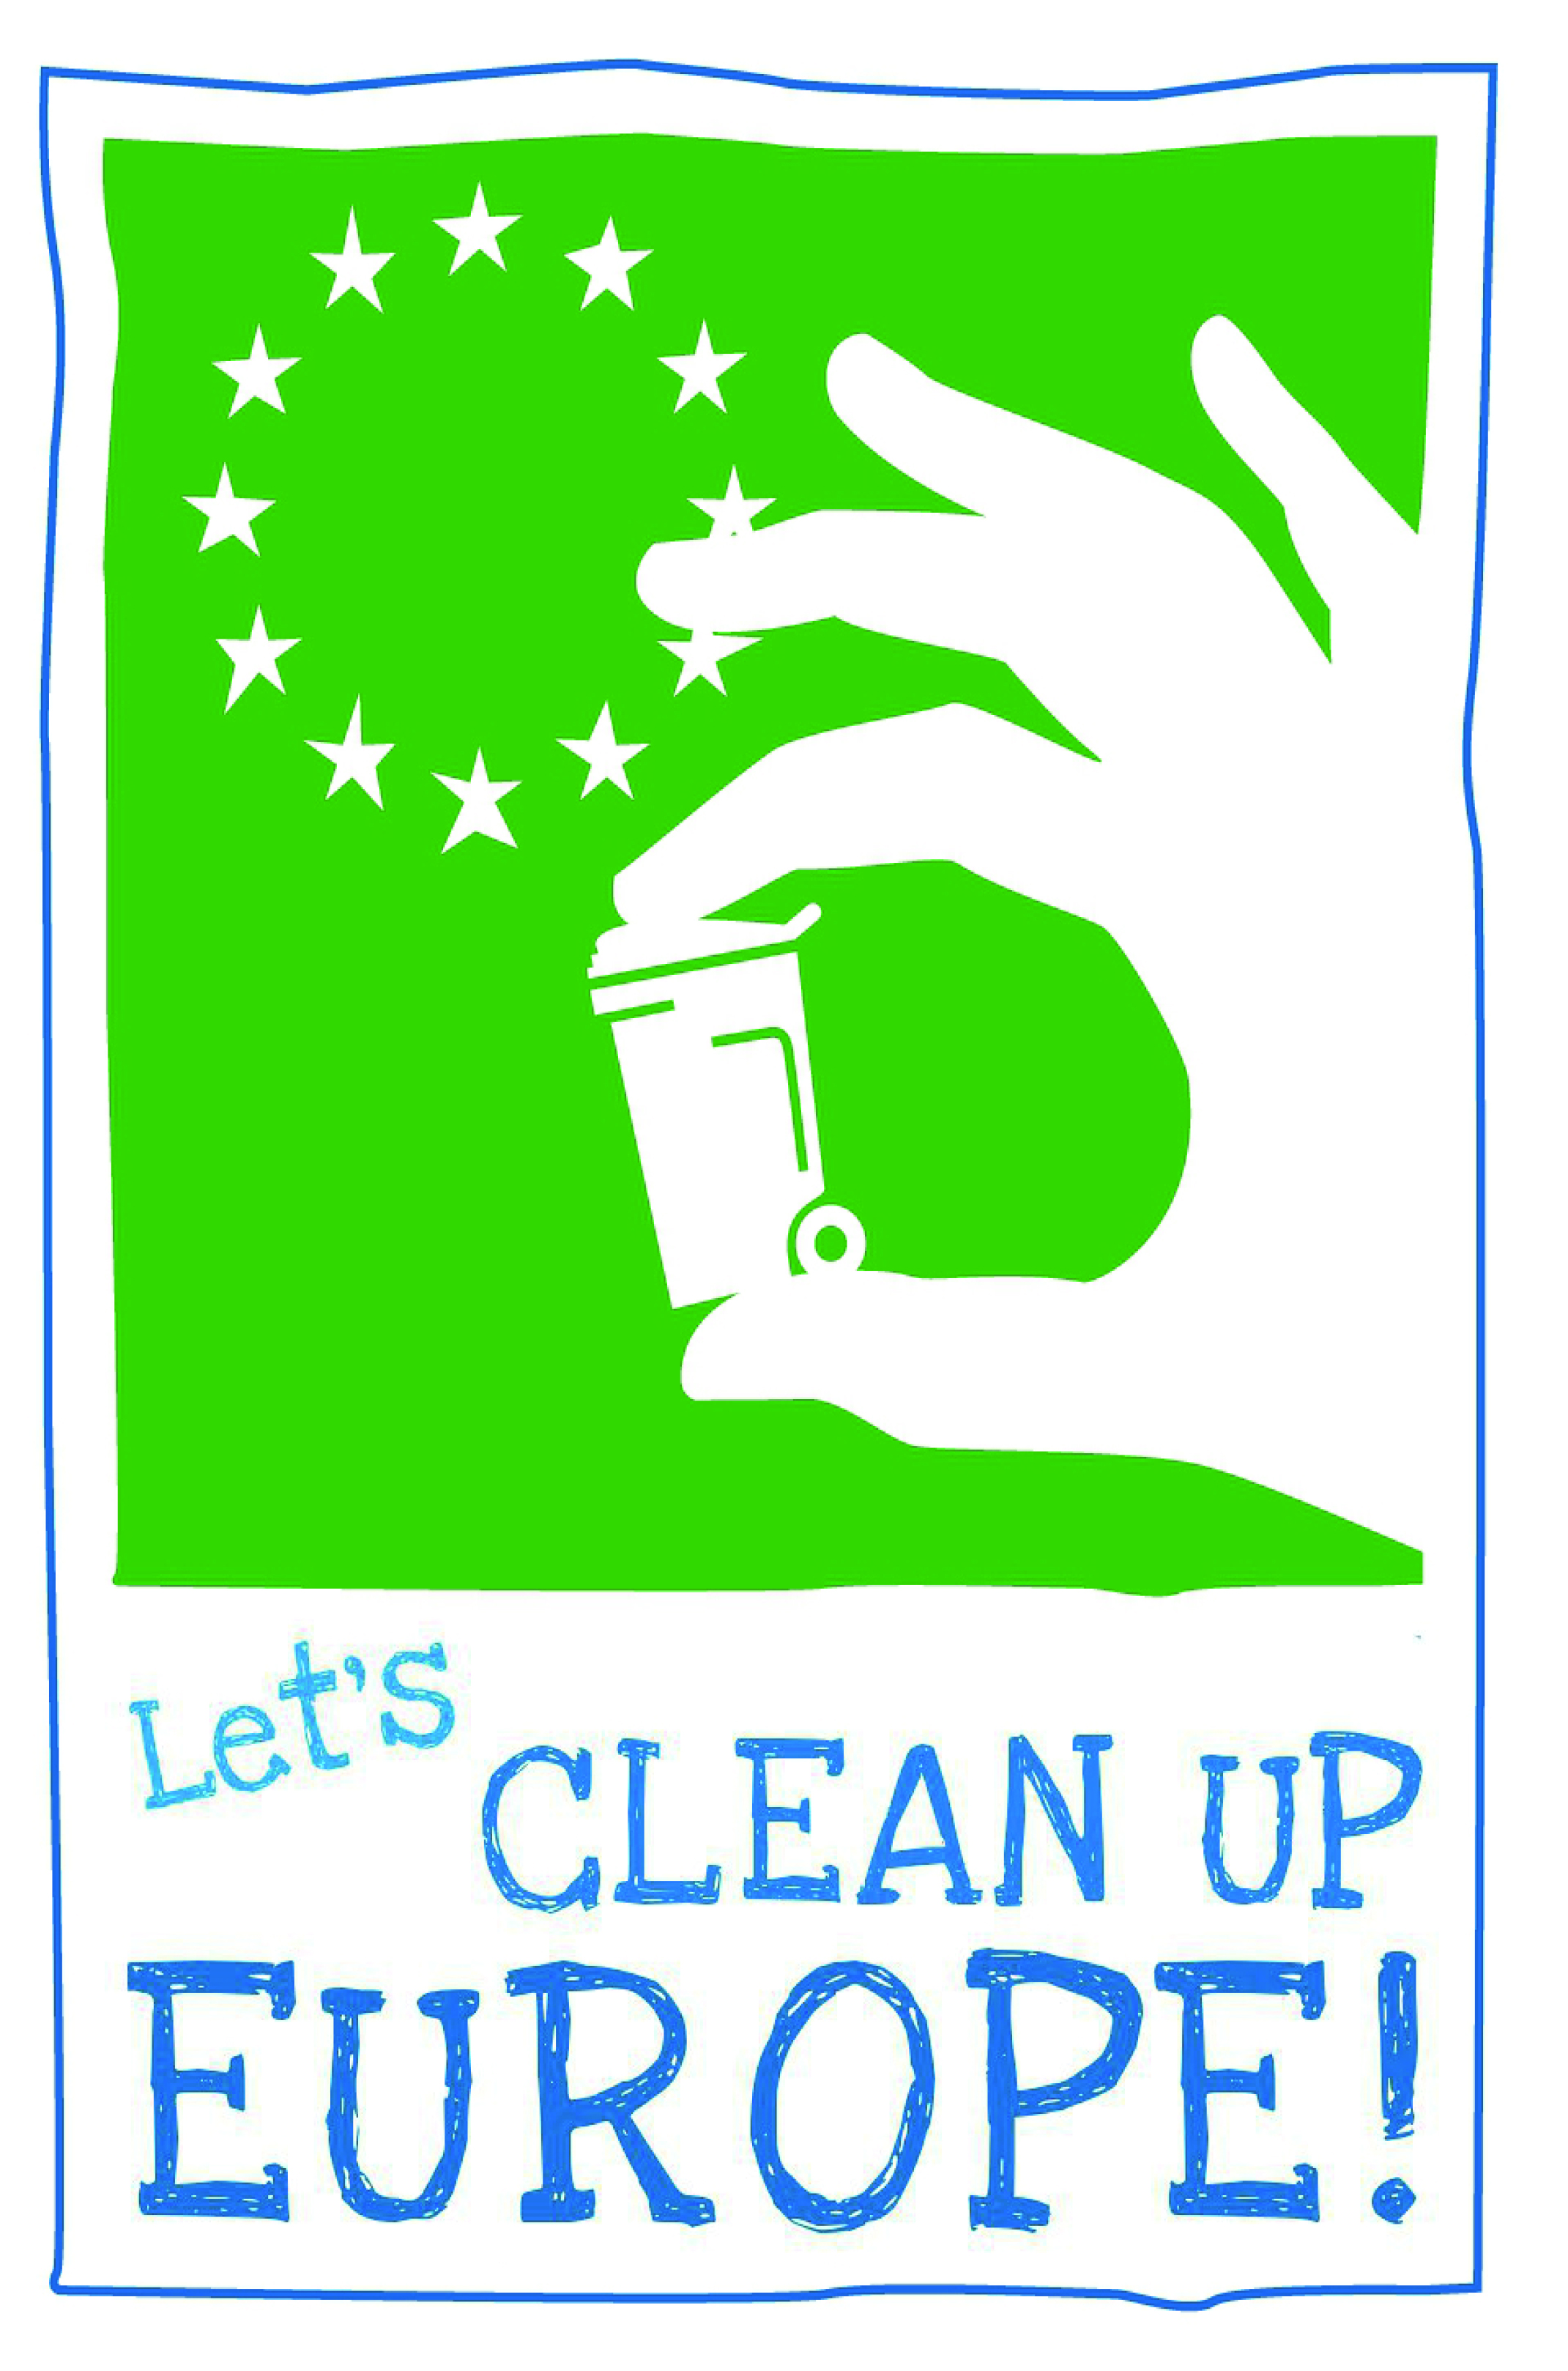 Let's Clean Up Europe logo